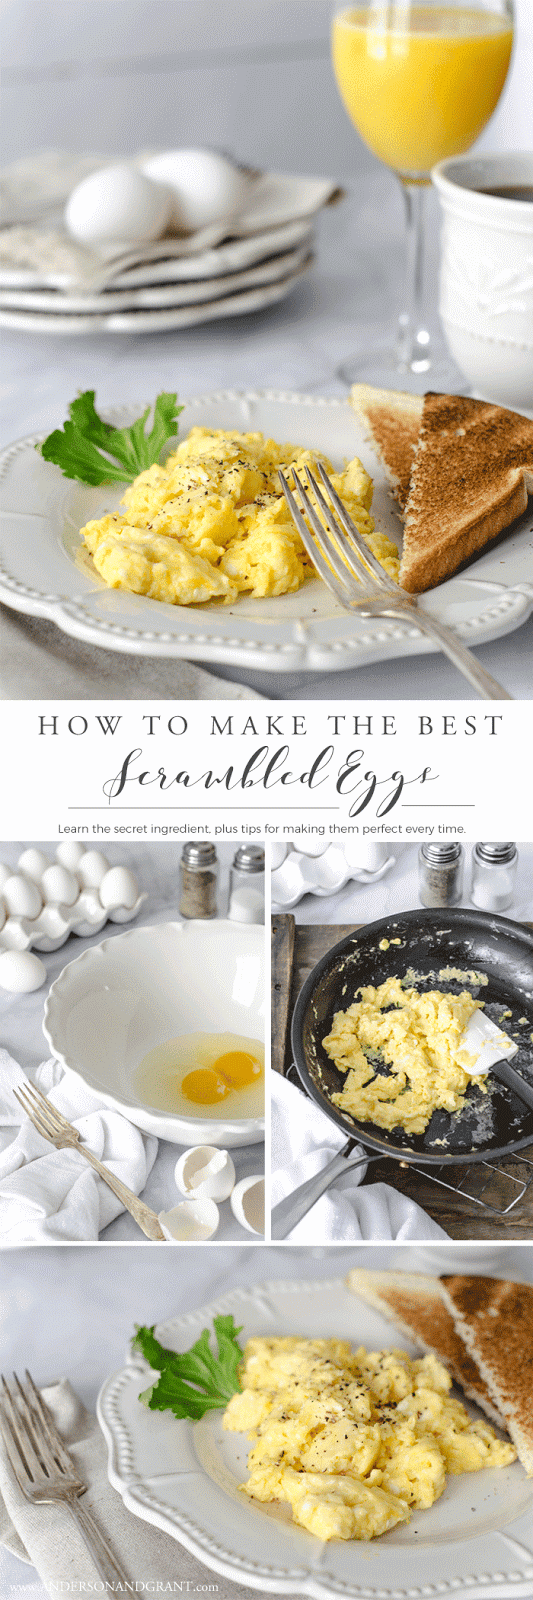 The simple ingredient you should add to your scrambled eggs every time